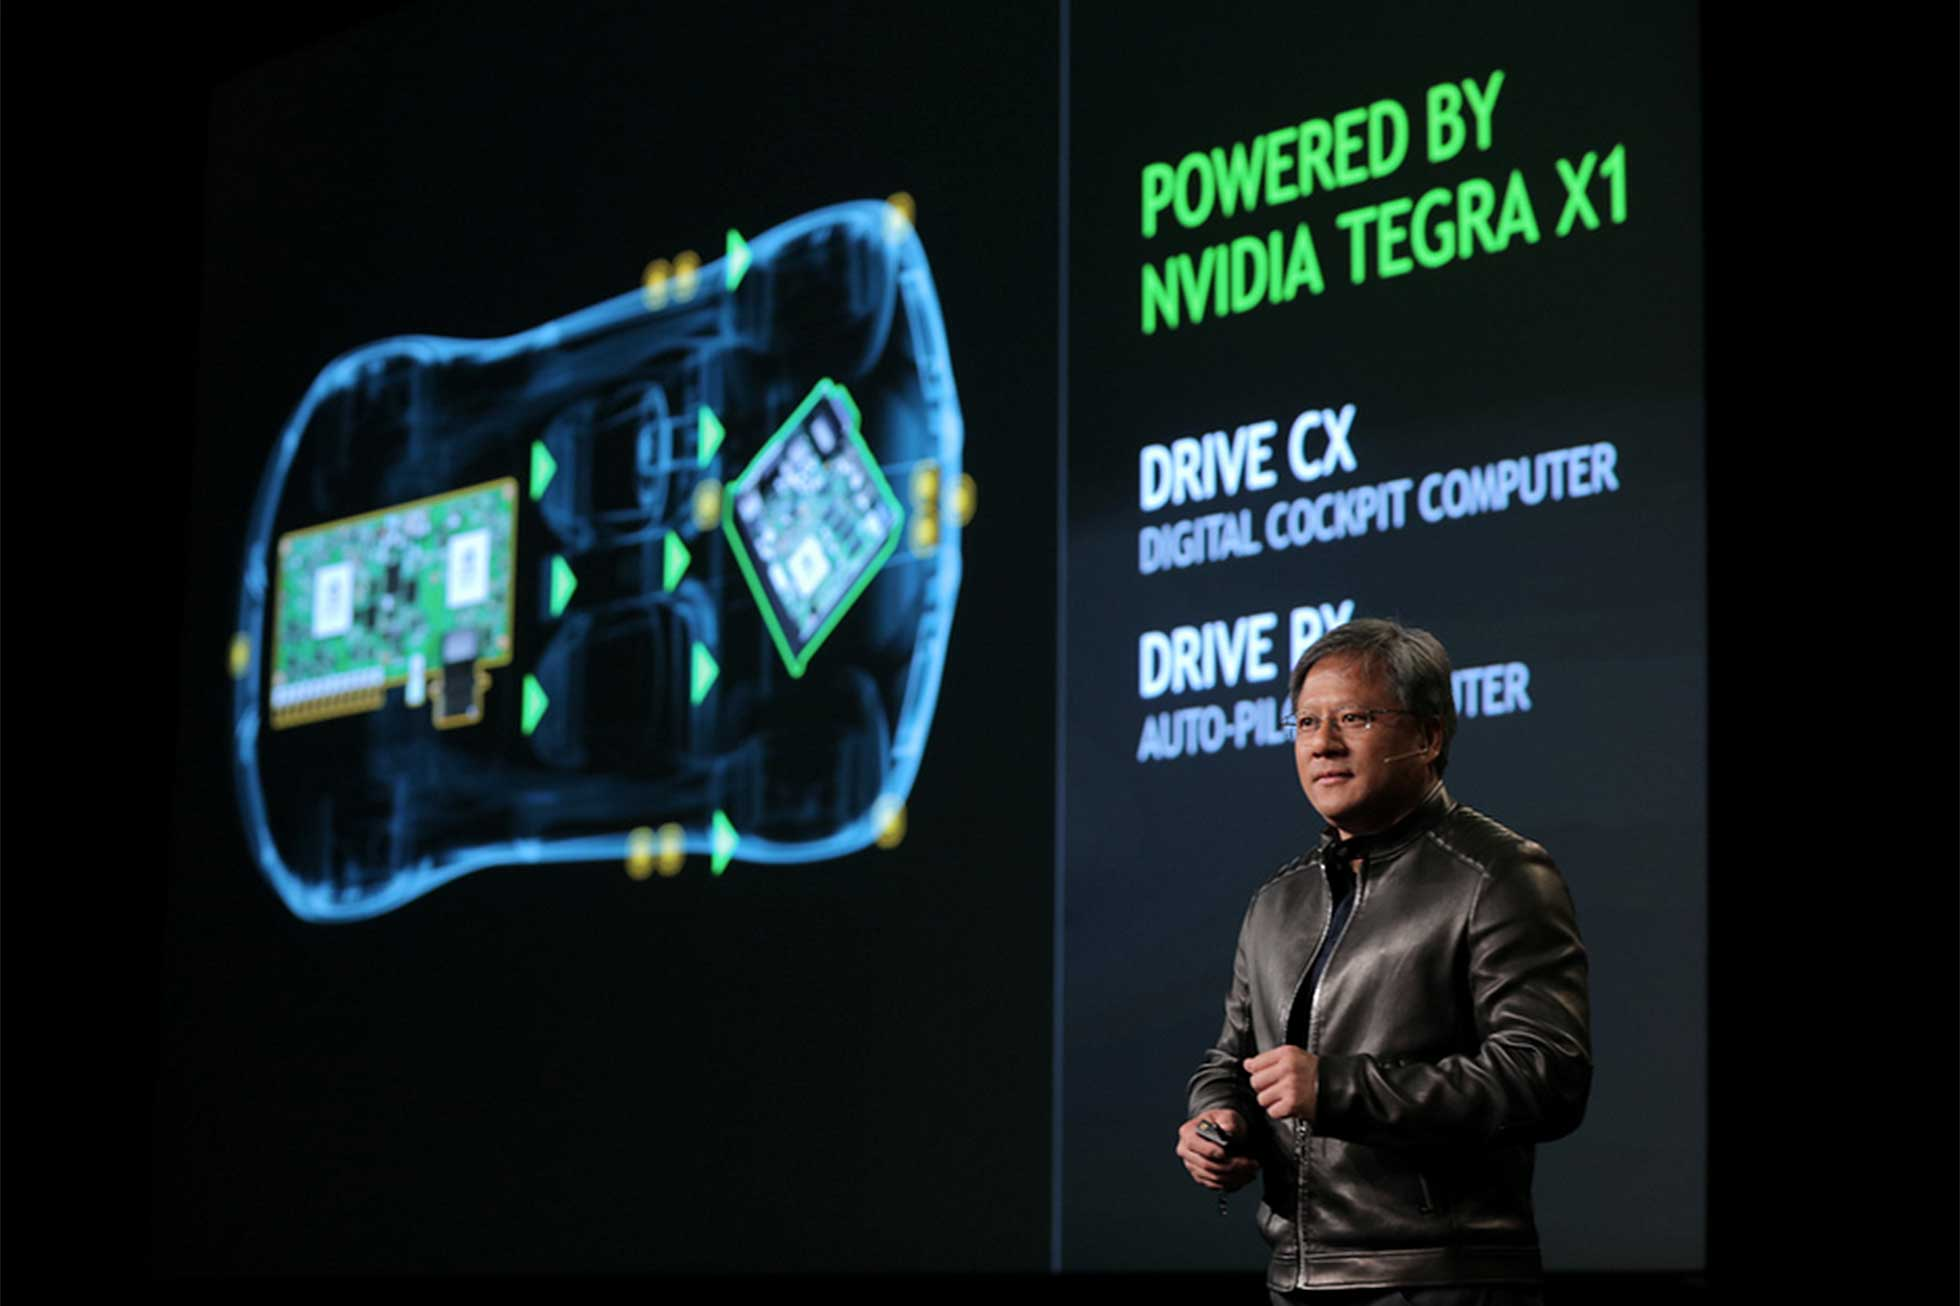 Nvidia launches Drive tech at CES 2015